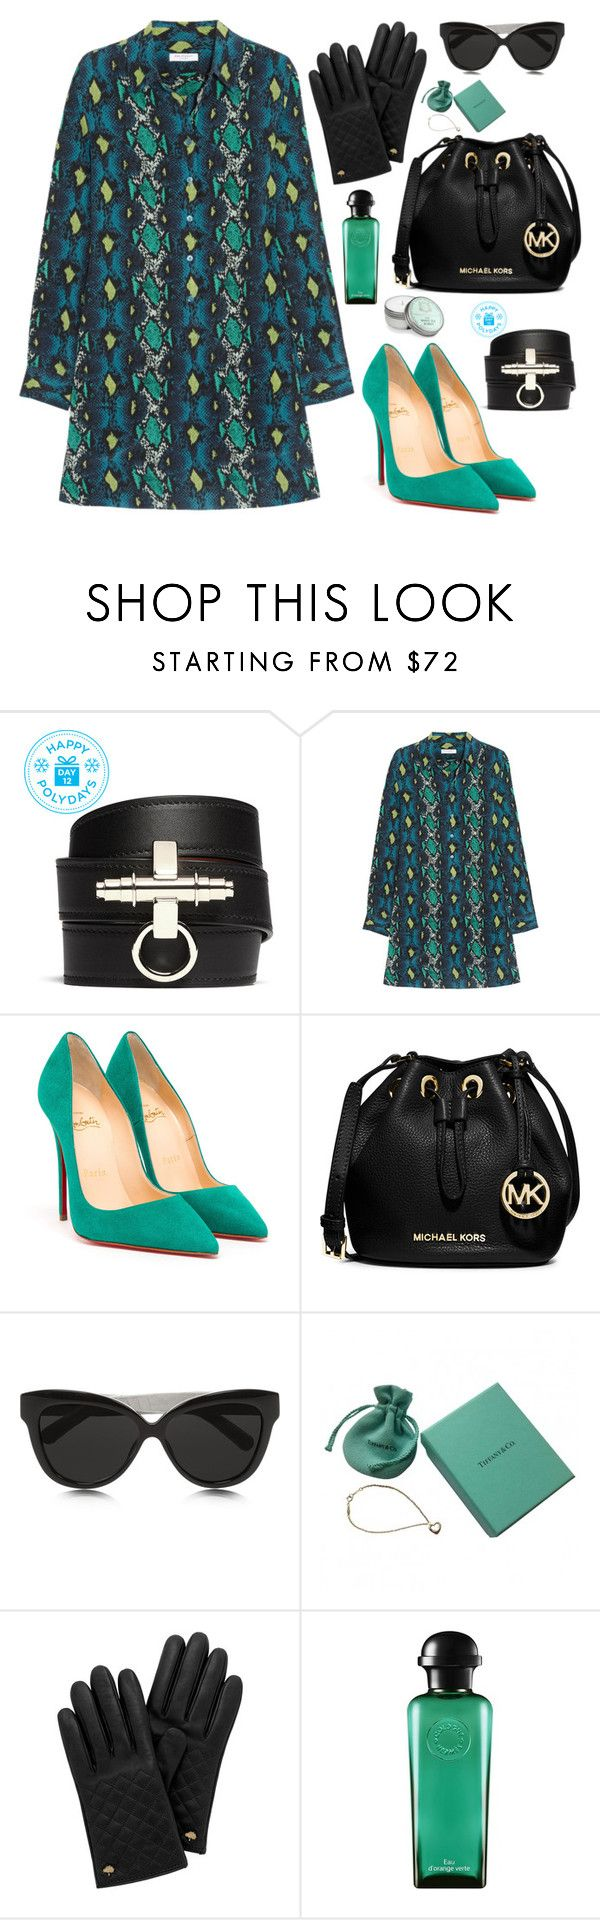 """""""Greens."""" by mara-petcana ❤ liked on Polyvore featuring Givenchy, Equipment, Christian Louboutin, MICHAEL Michael Kors, Linda Farrow, Tiffany & Co., Mulberry, Hermès, Aquiesse and Louboutin"""